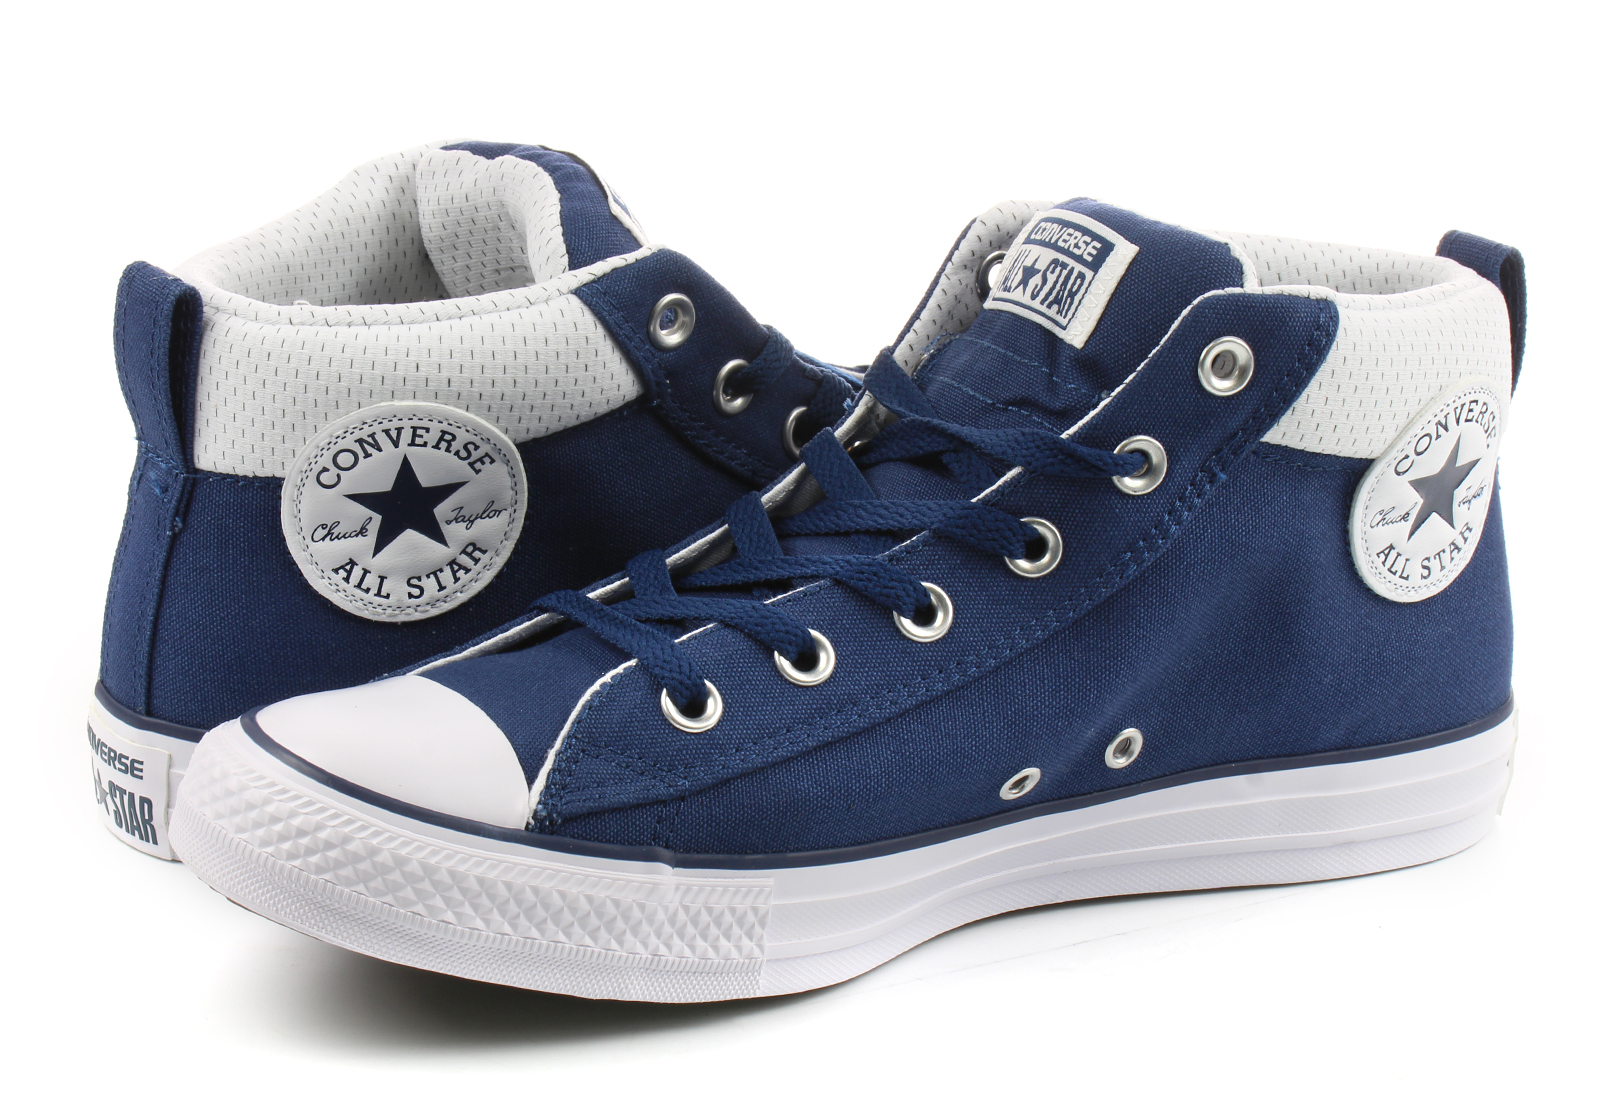 Converse Sneakers - Chuck Taylor All Star Street Mid - 159633C ... 61ff5ef76d